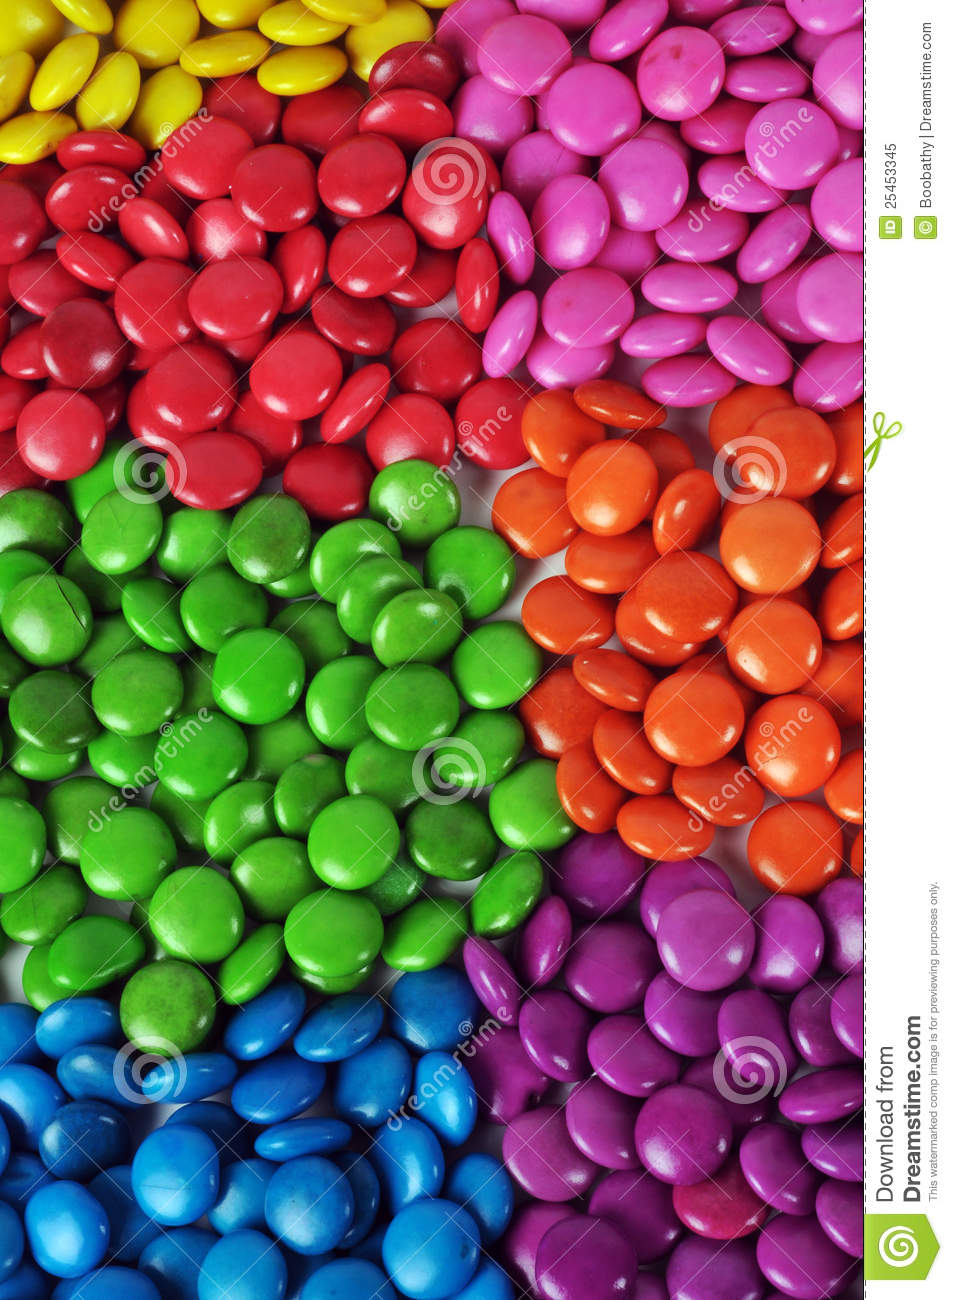 colorful candy stock image image of colored pink many 25453345